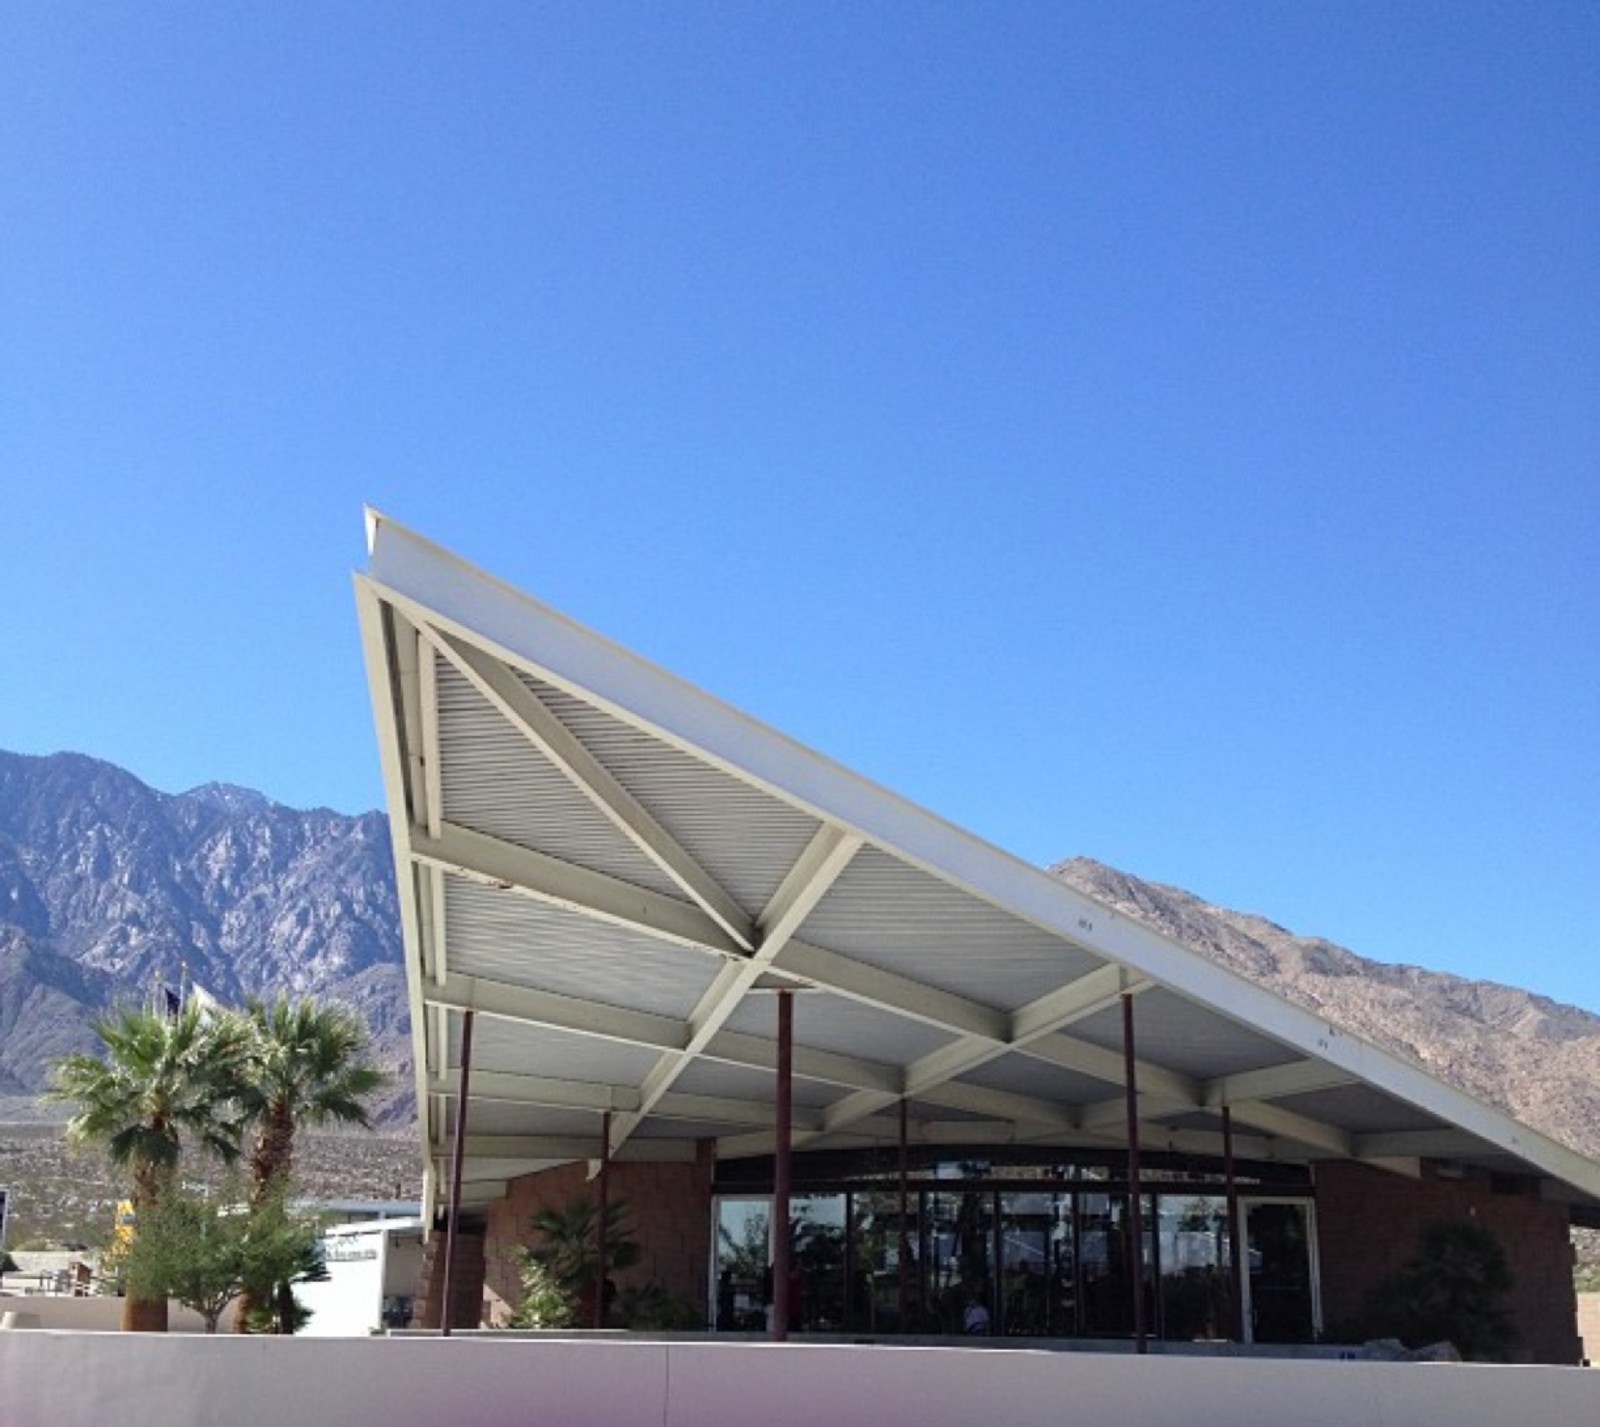 Visitors entering Palm Springs from other desert cities will first come upon the Palm Springs Tramway gas station, designed in 1965 by Albert Frey and Robson Chambers, topped by a hyperbolic paraboloid roof.